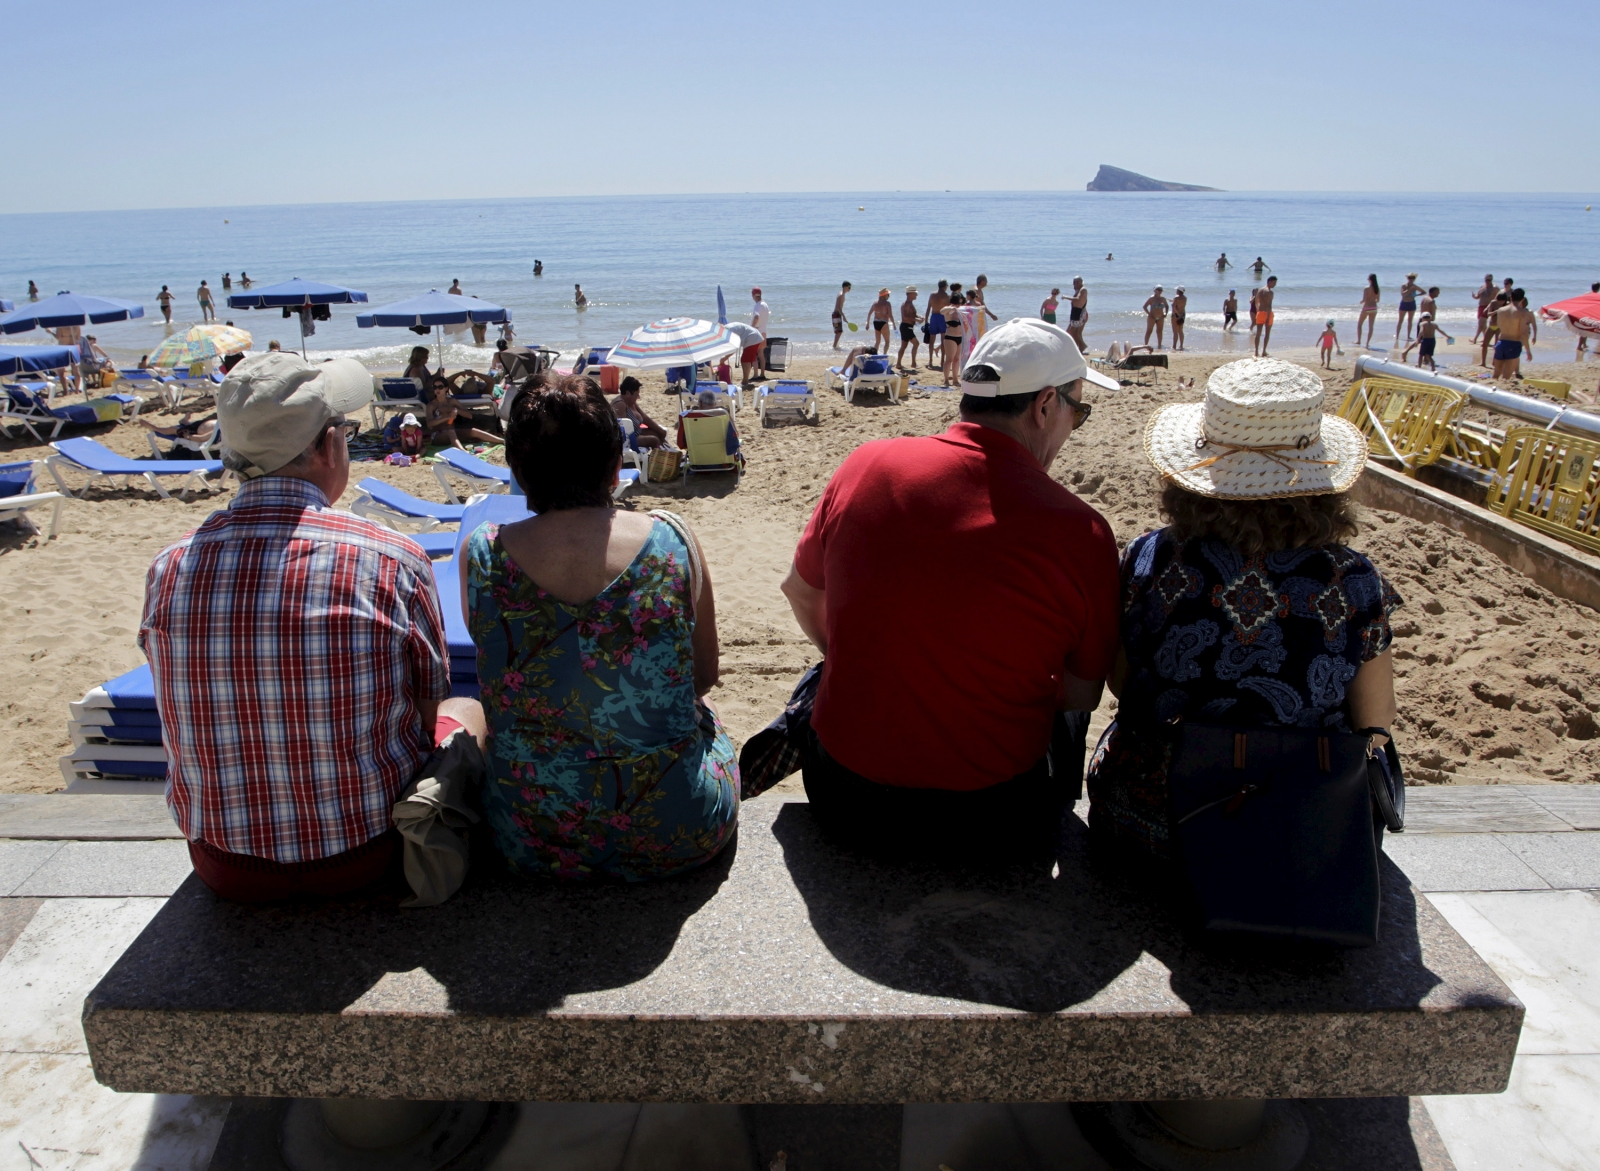 Pensioners in Spain on holiday